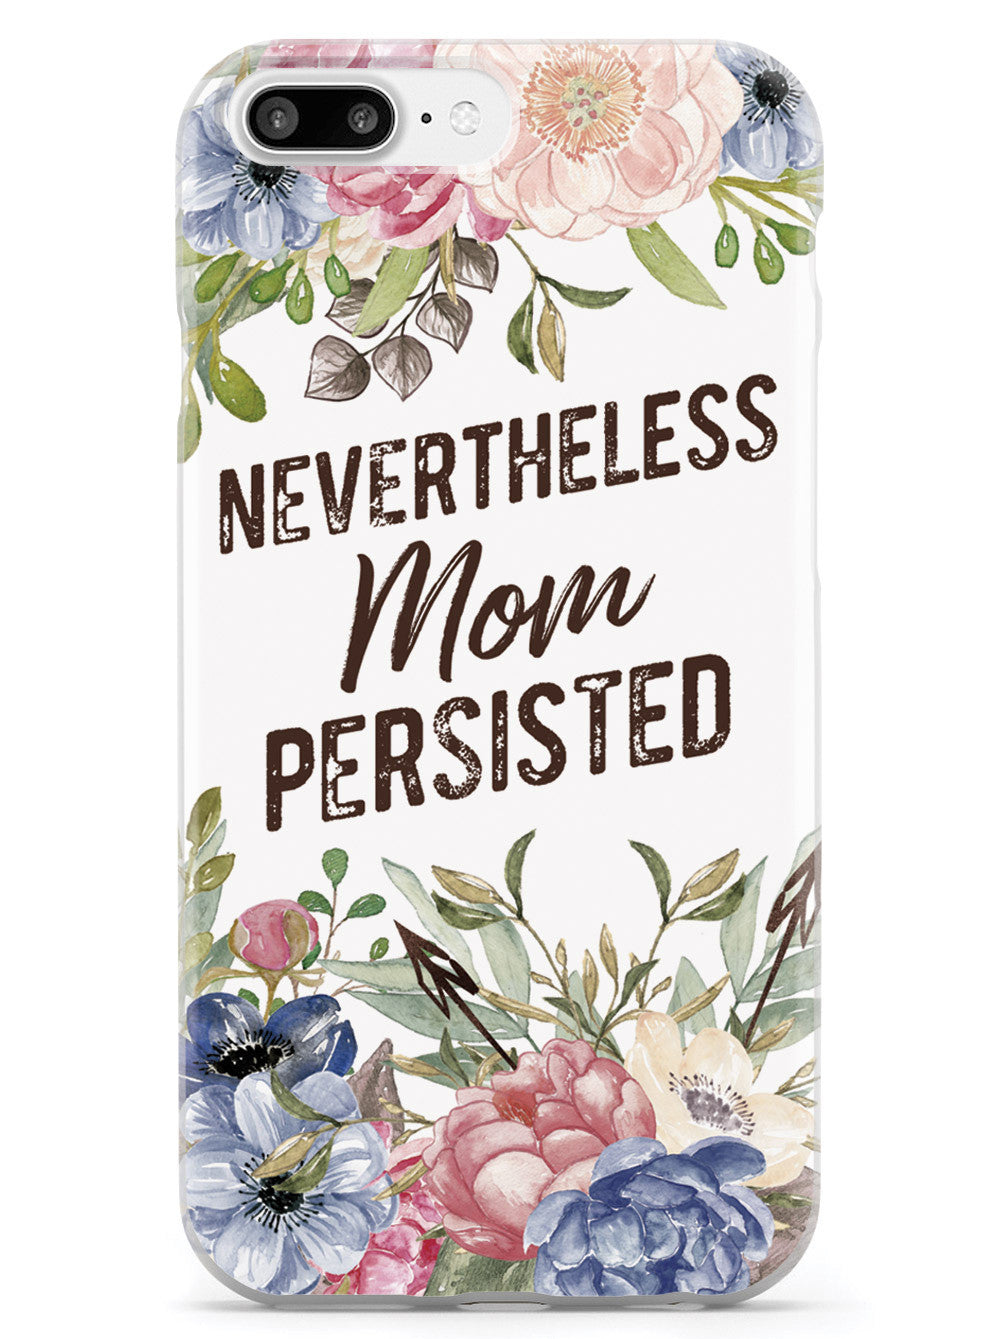 Neverthless, Mom Persisted - White Case